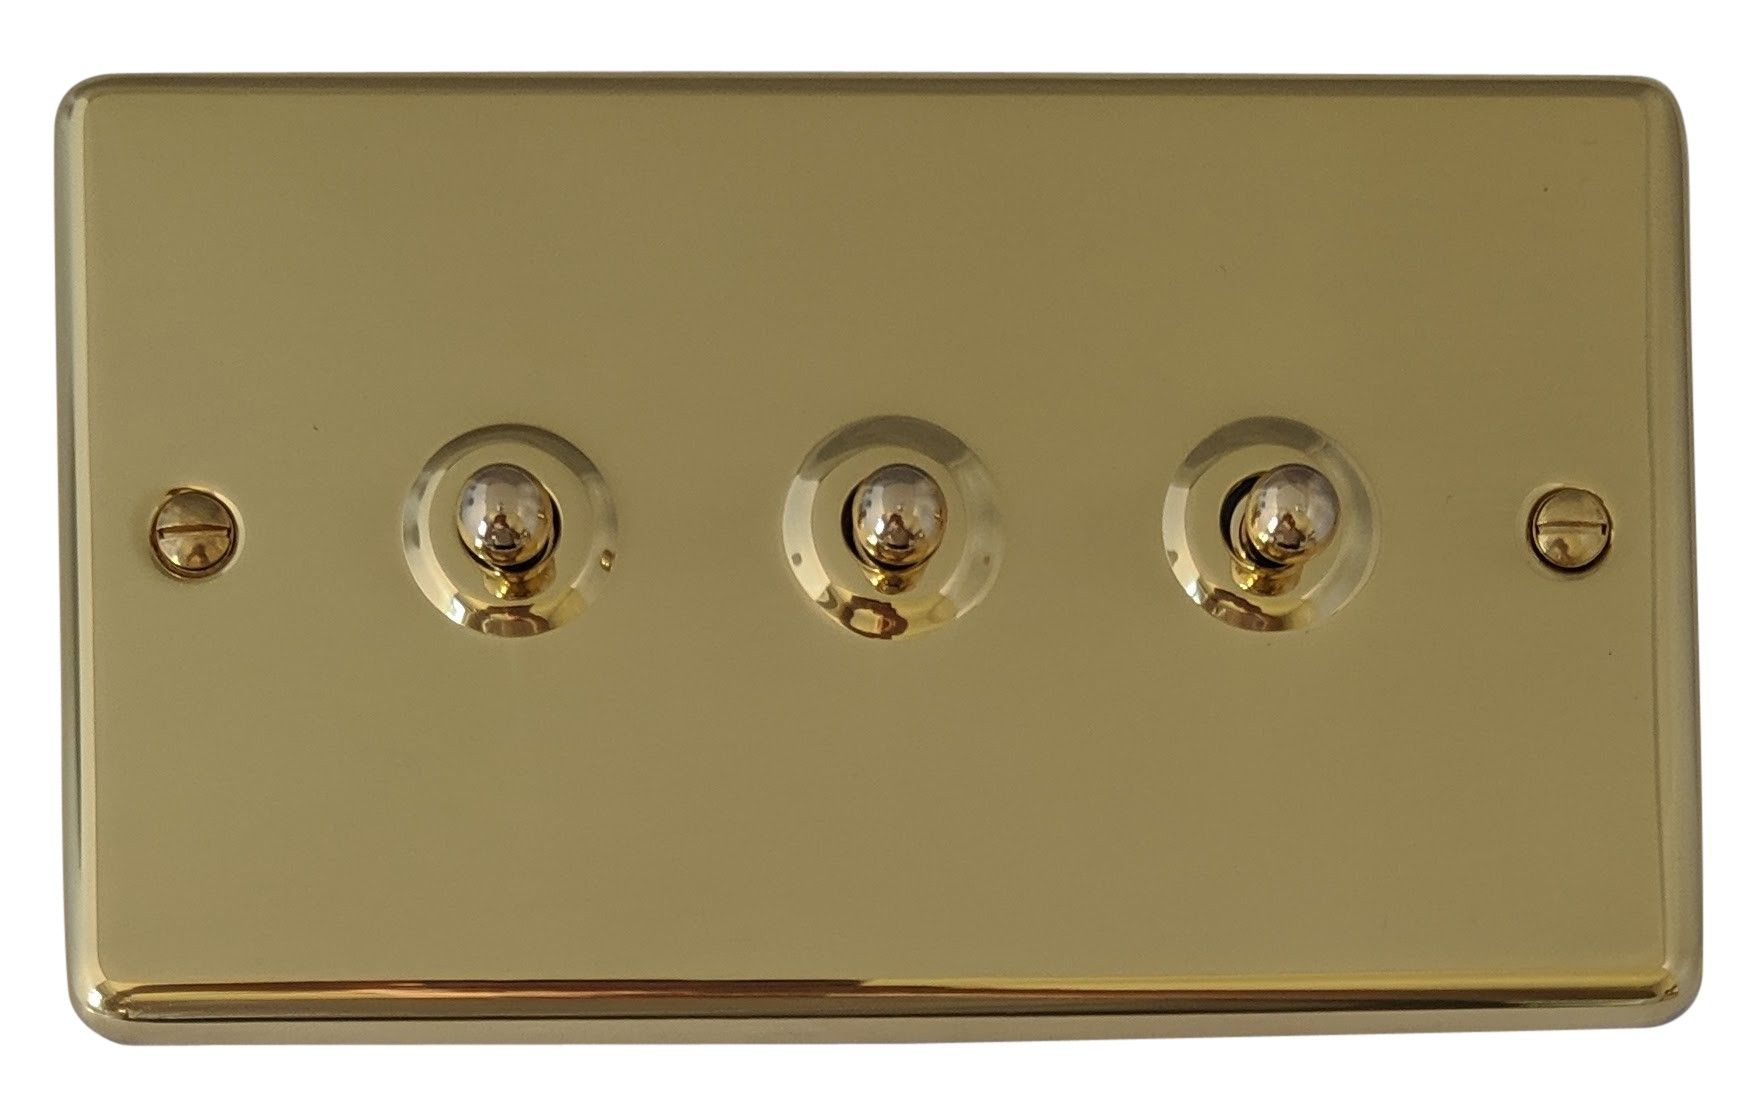 G H Cb283 Standard Plate Polished Brass 3 Gang 1 Or 2 Way Toggle Light Switch